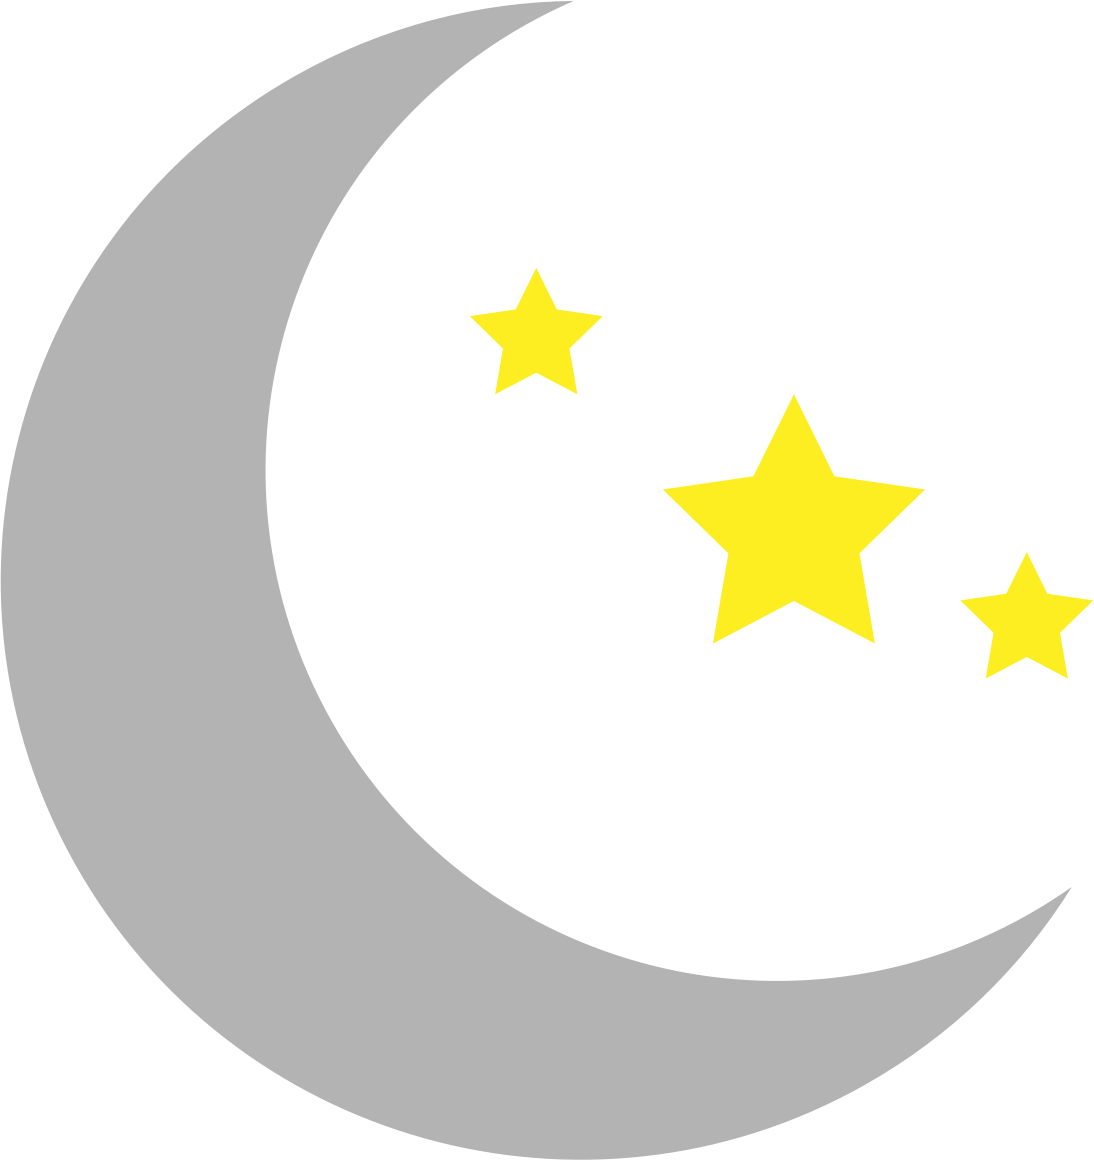 Moon And Star Clipart.